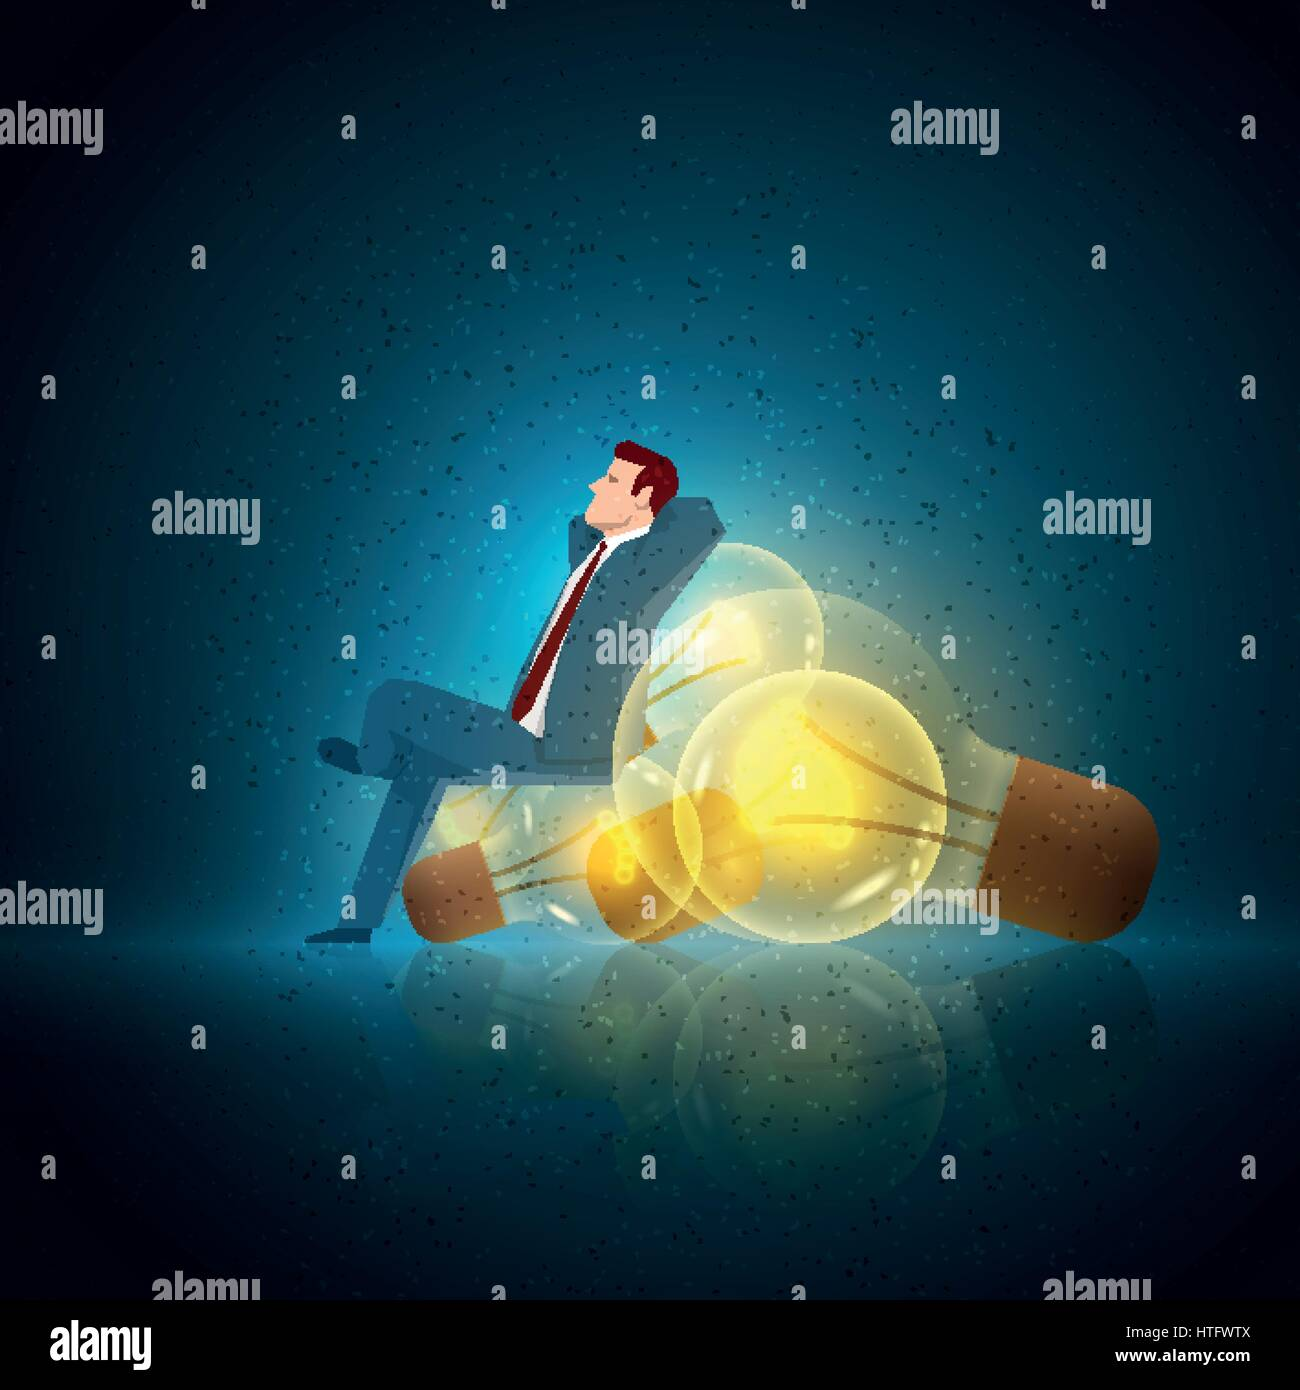 Business concept illustration. Businessman relax on the bulb. Elements are layered separately in vector file. - Stock Vector